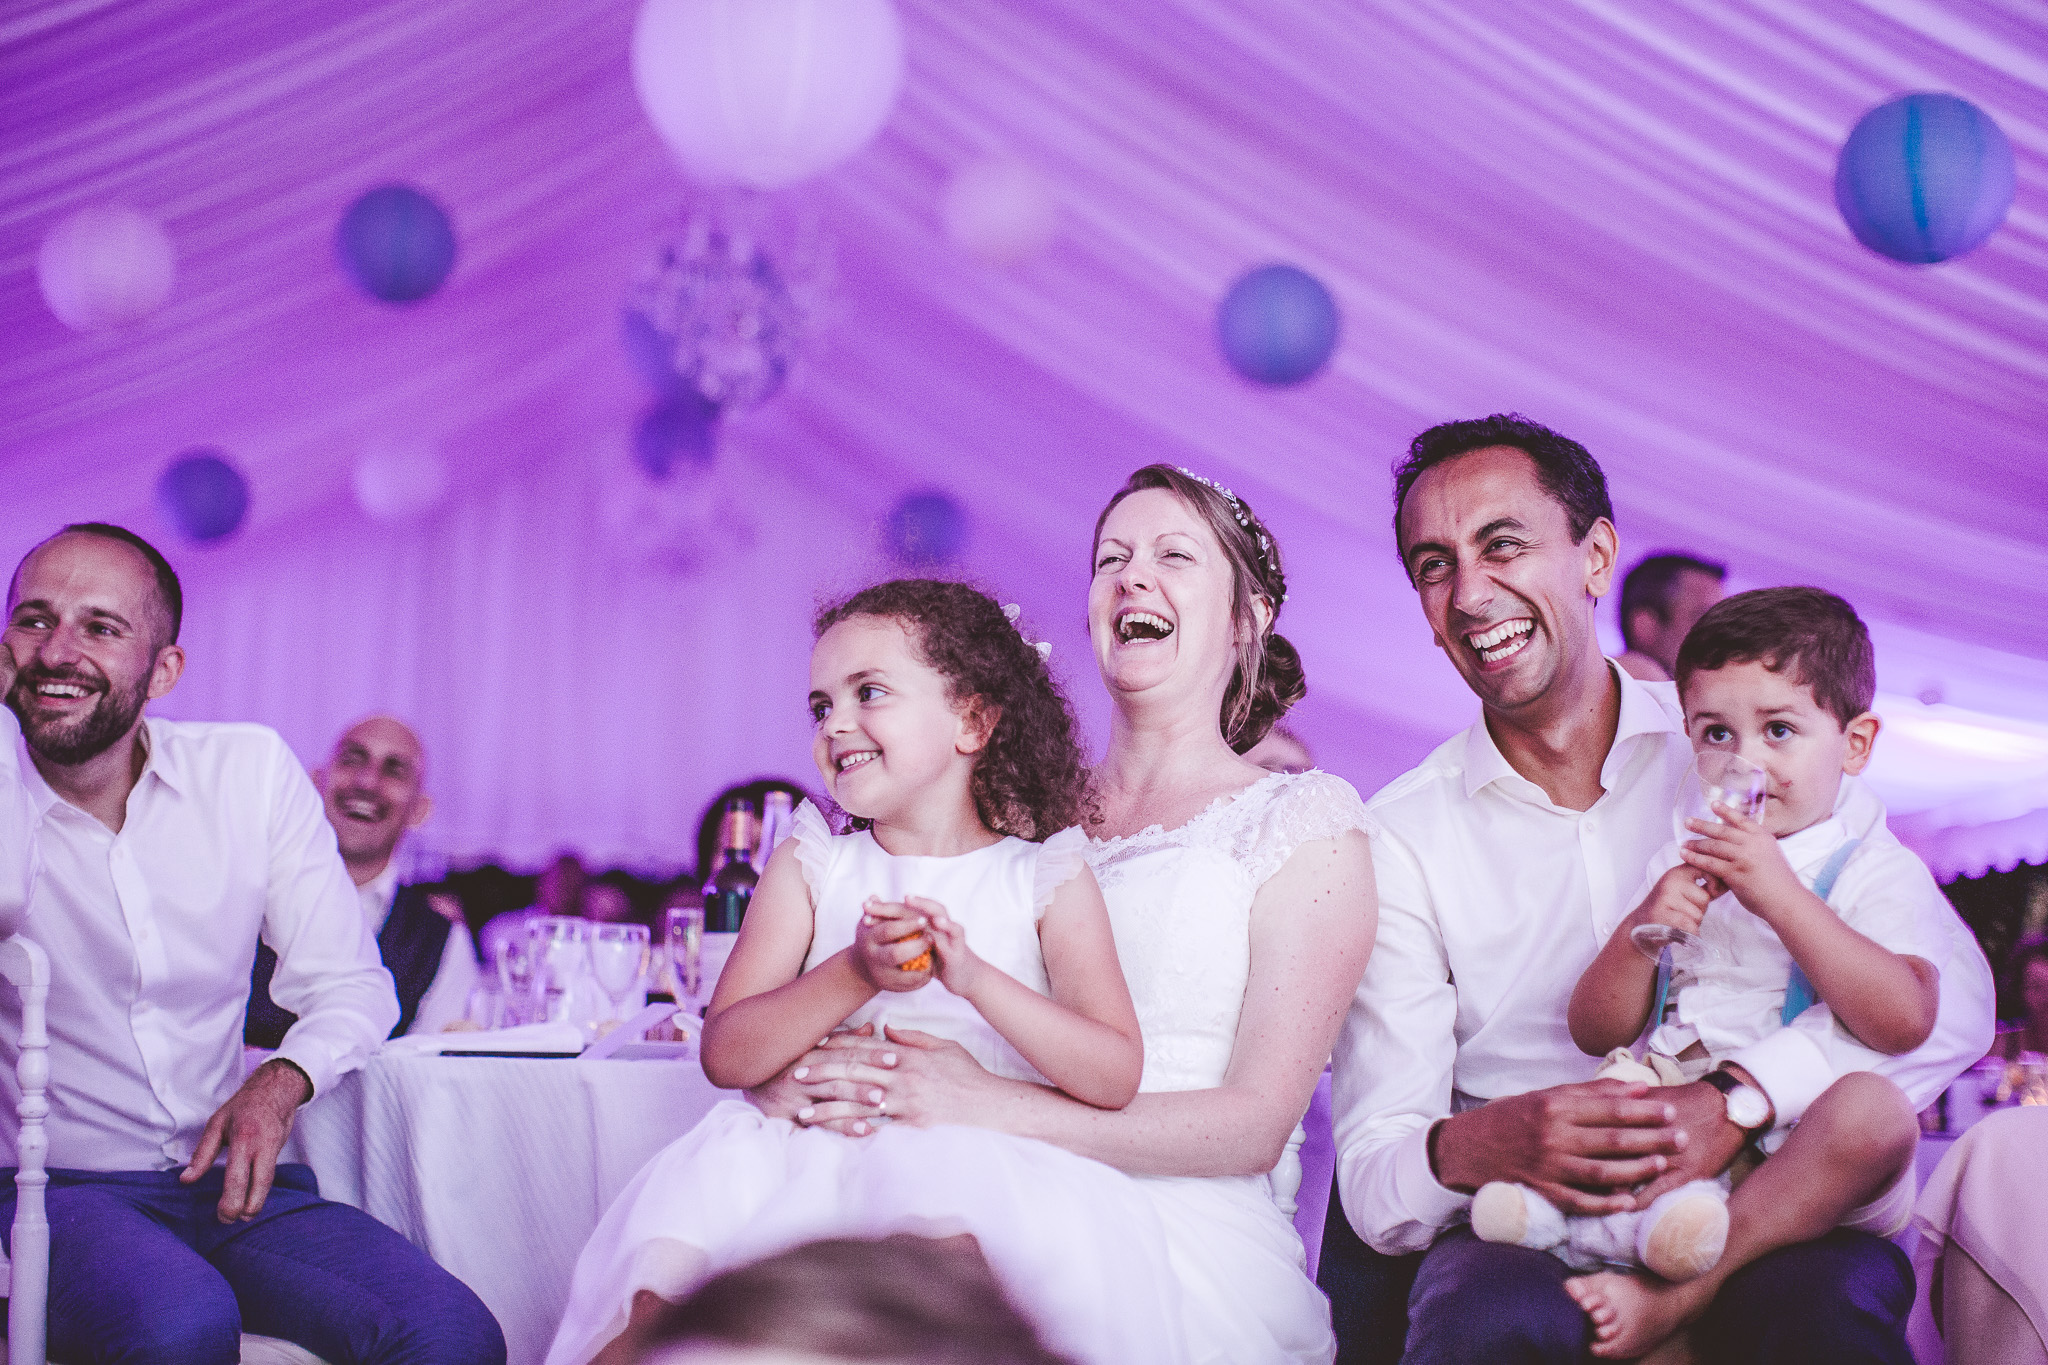 reportage mariage photo soiree repas animation reaction maries chateau launac toulouse